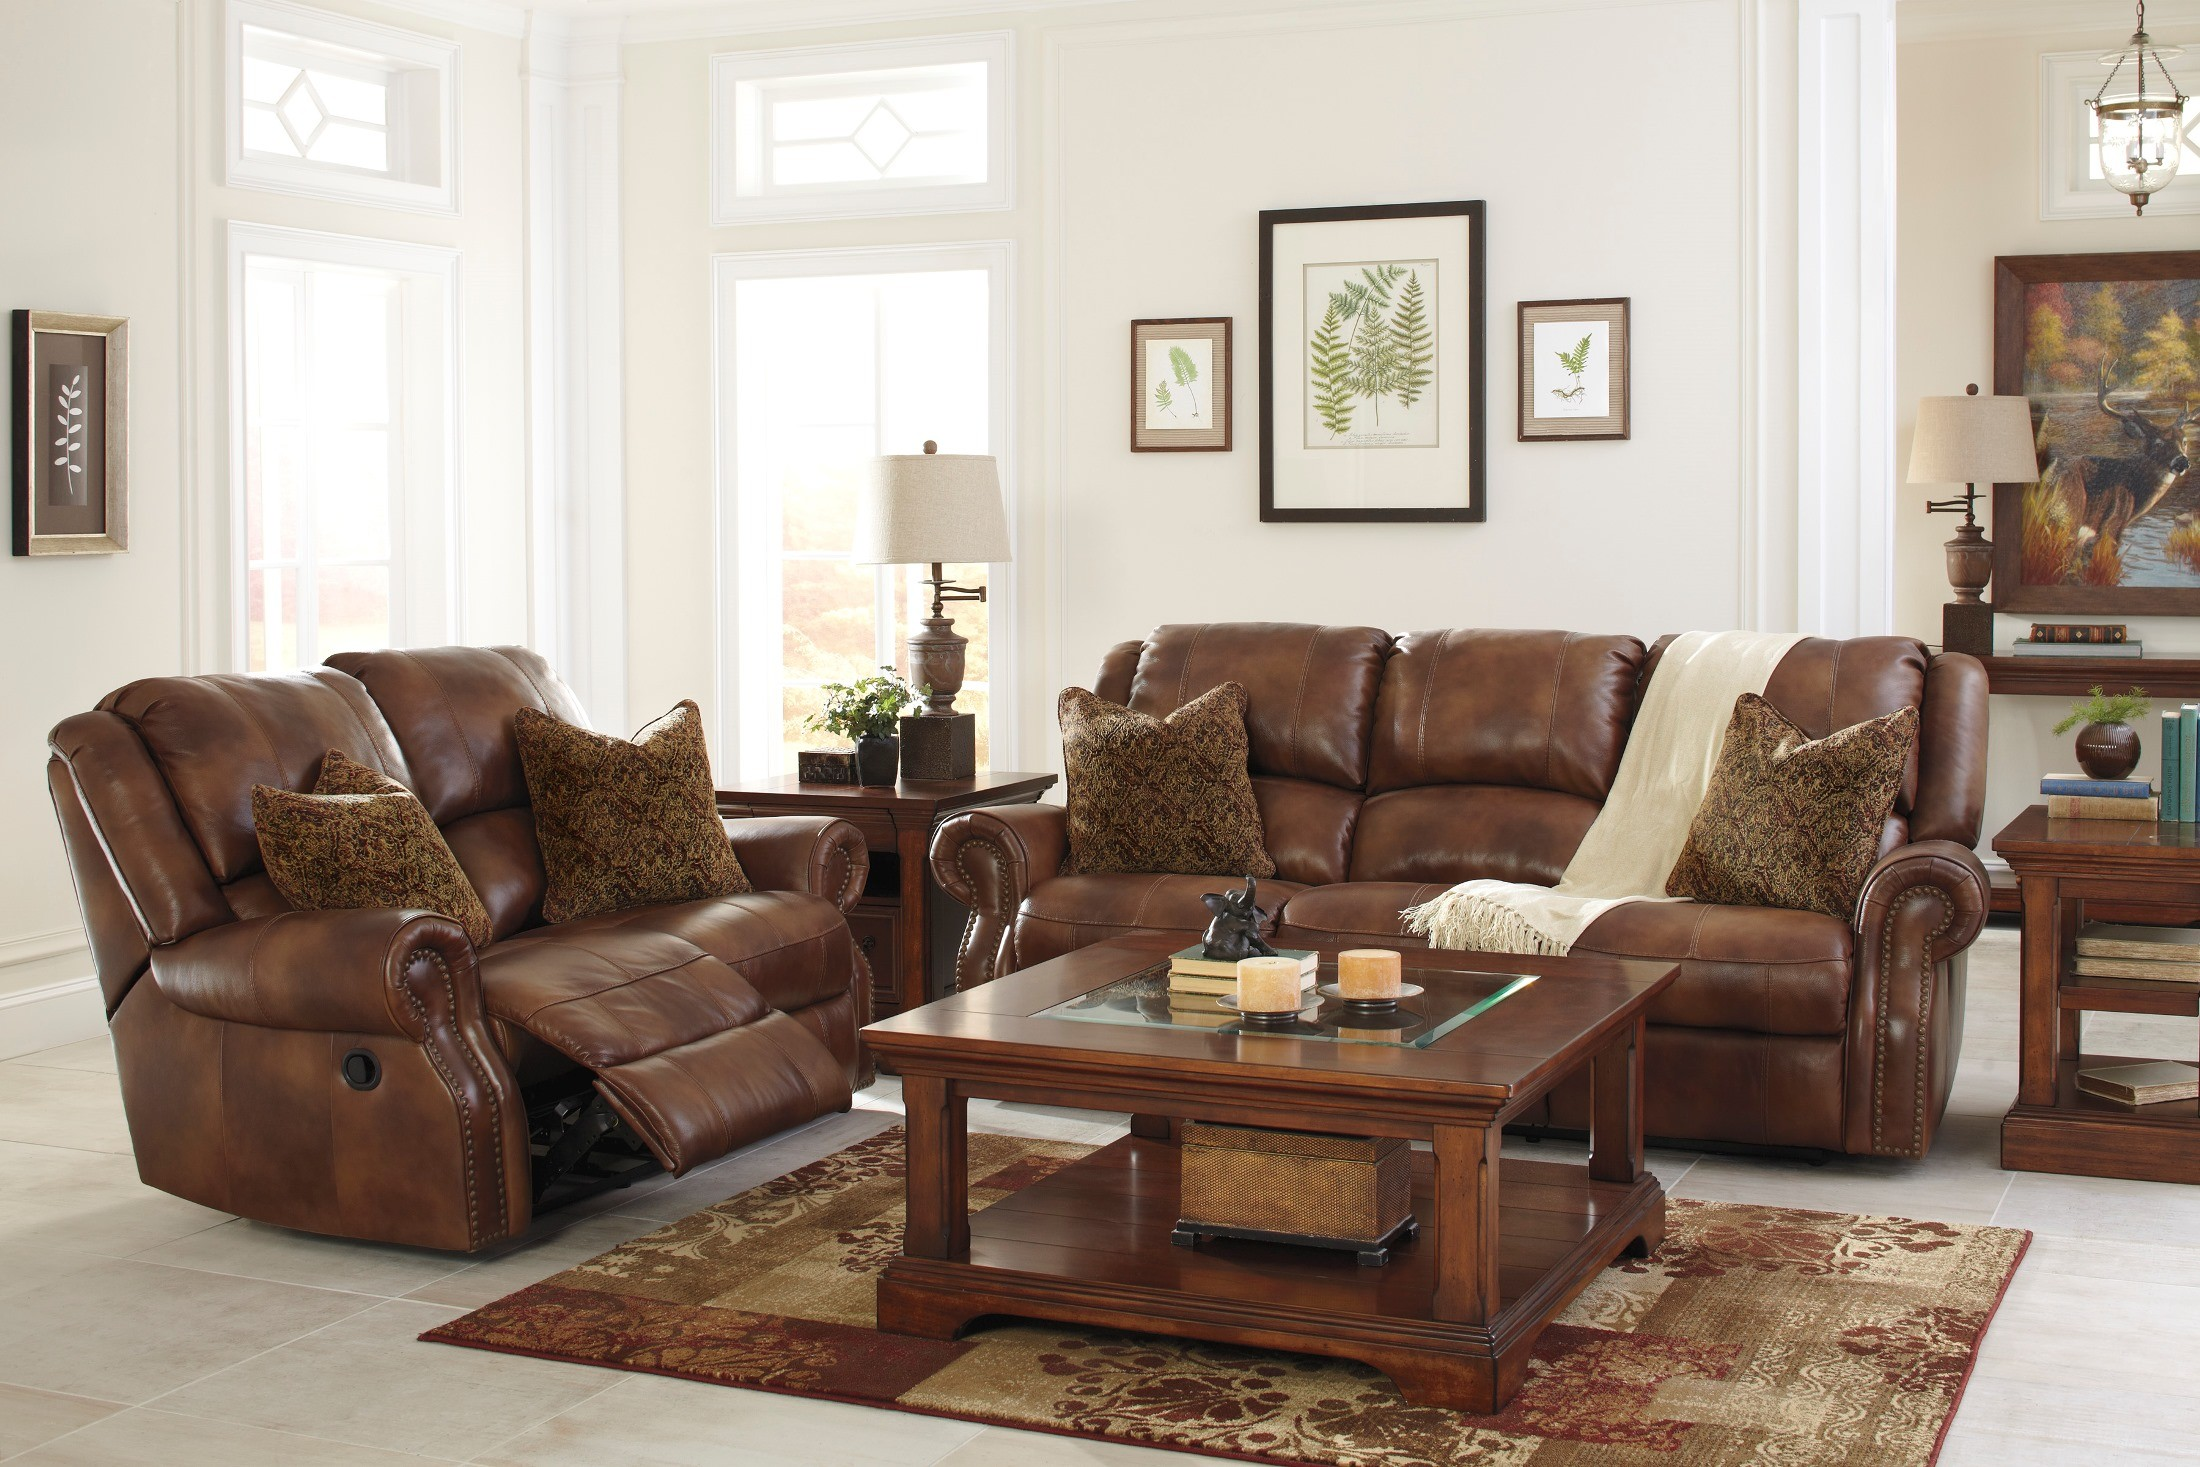 Walworth auburn power reclining living room set from ashley u78001 87